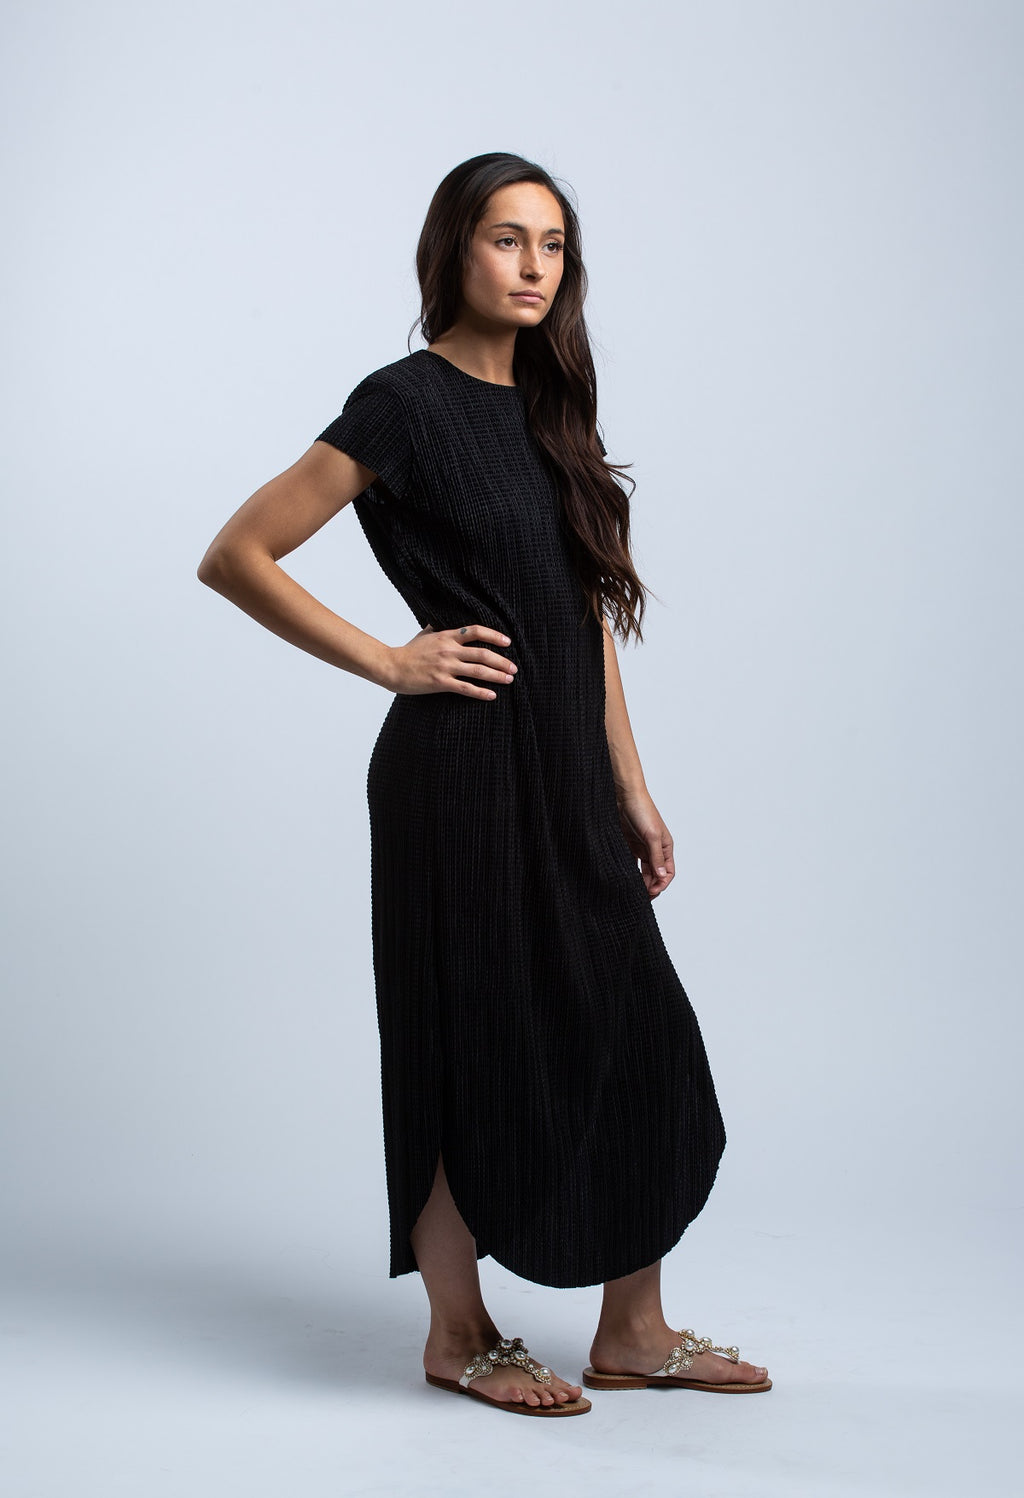 SABINA MUSAYEV - SHIRIN DRESS IN BLACK